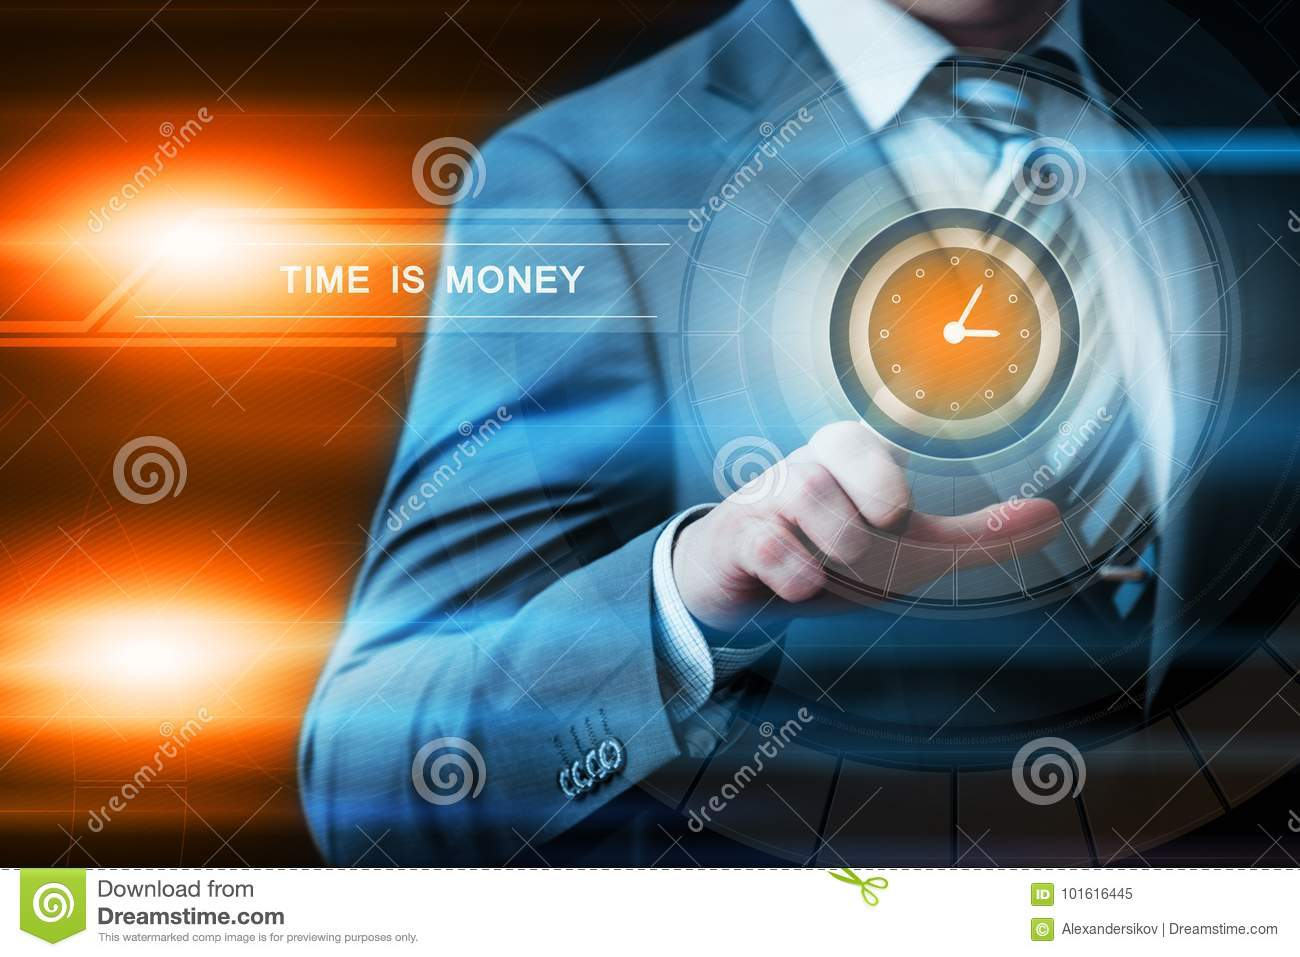 Time Is Money Investment Finance Business Technology Internet Concept